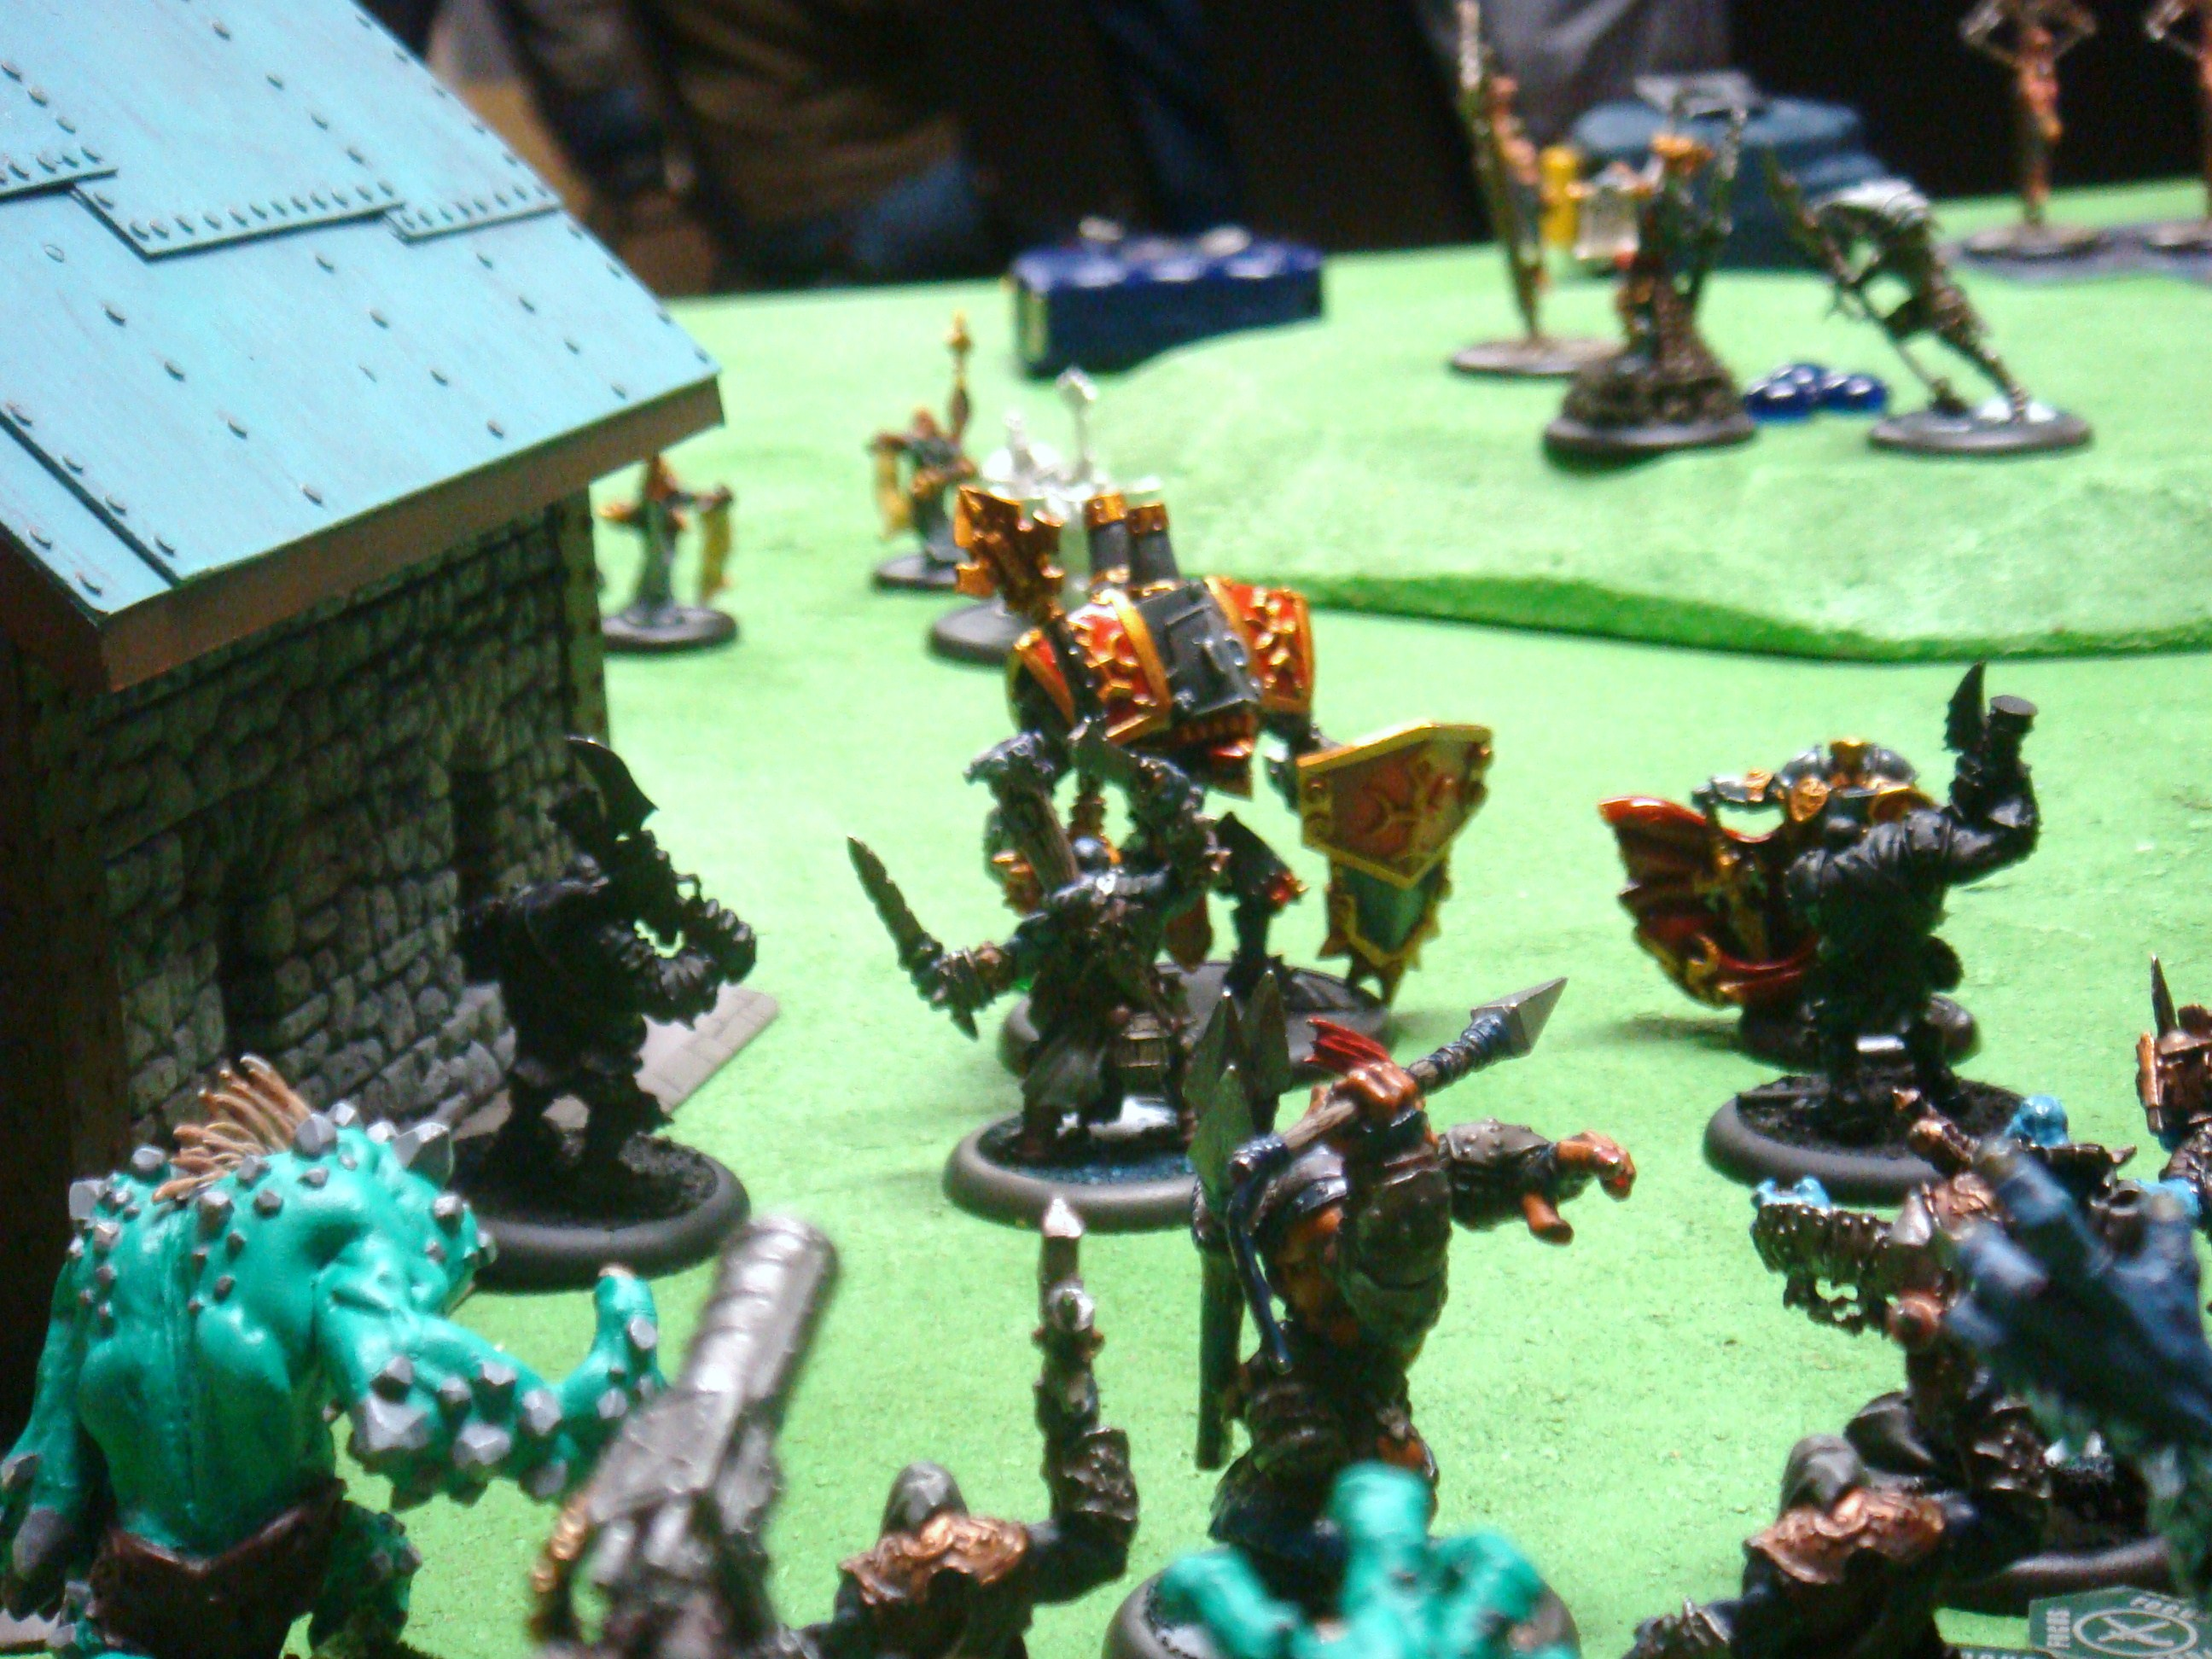 Warmachine Hordes Protectorate of Menoth Trolls 150pt Battle Report - Part 5